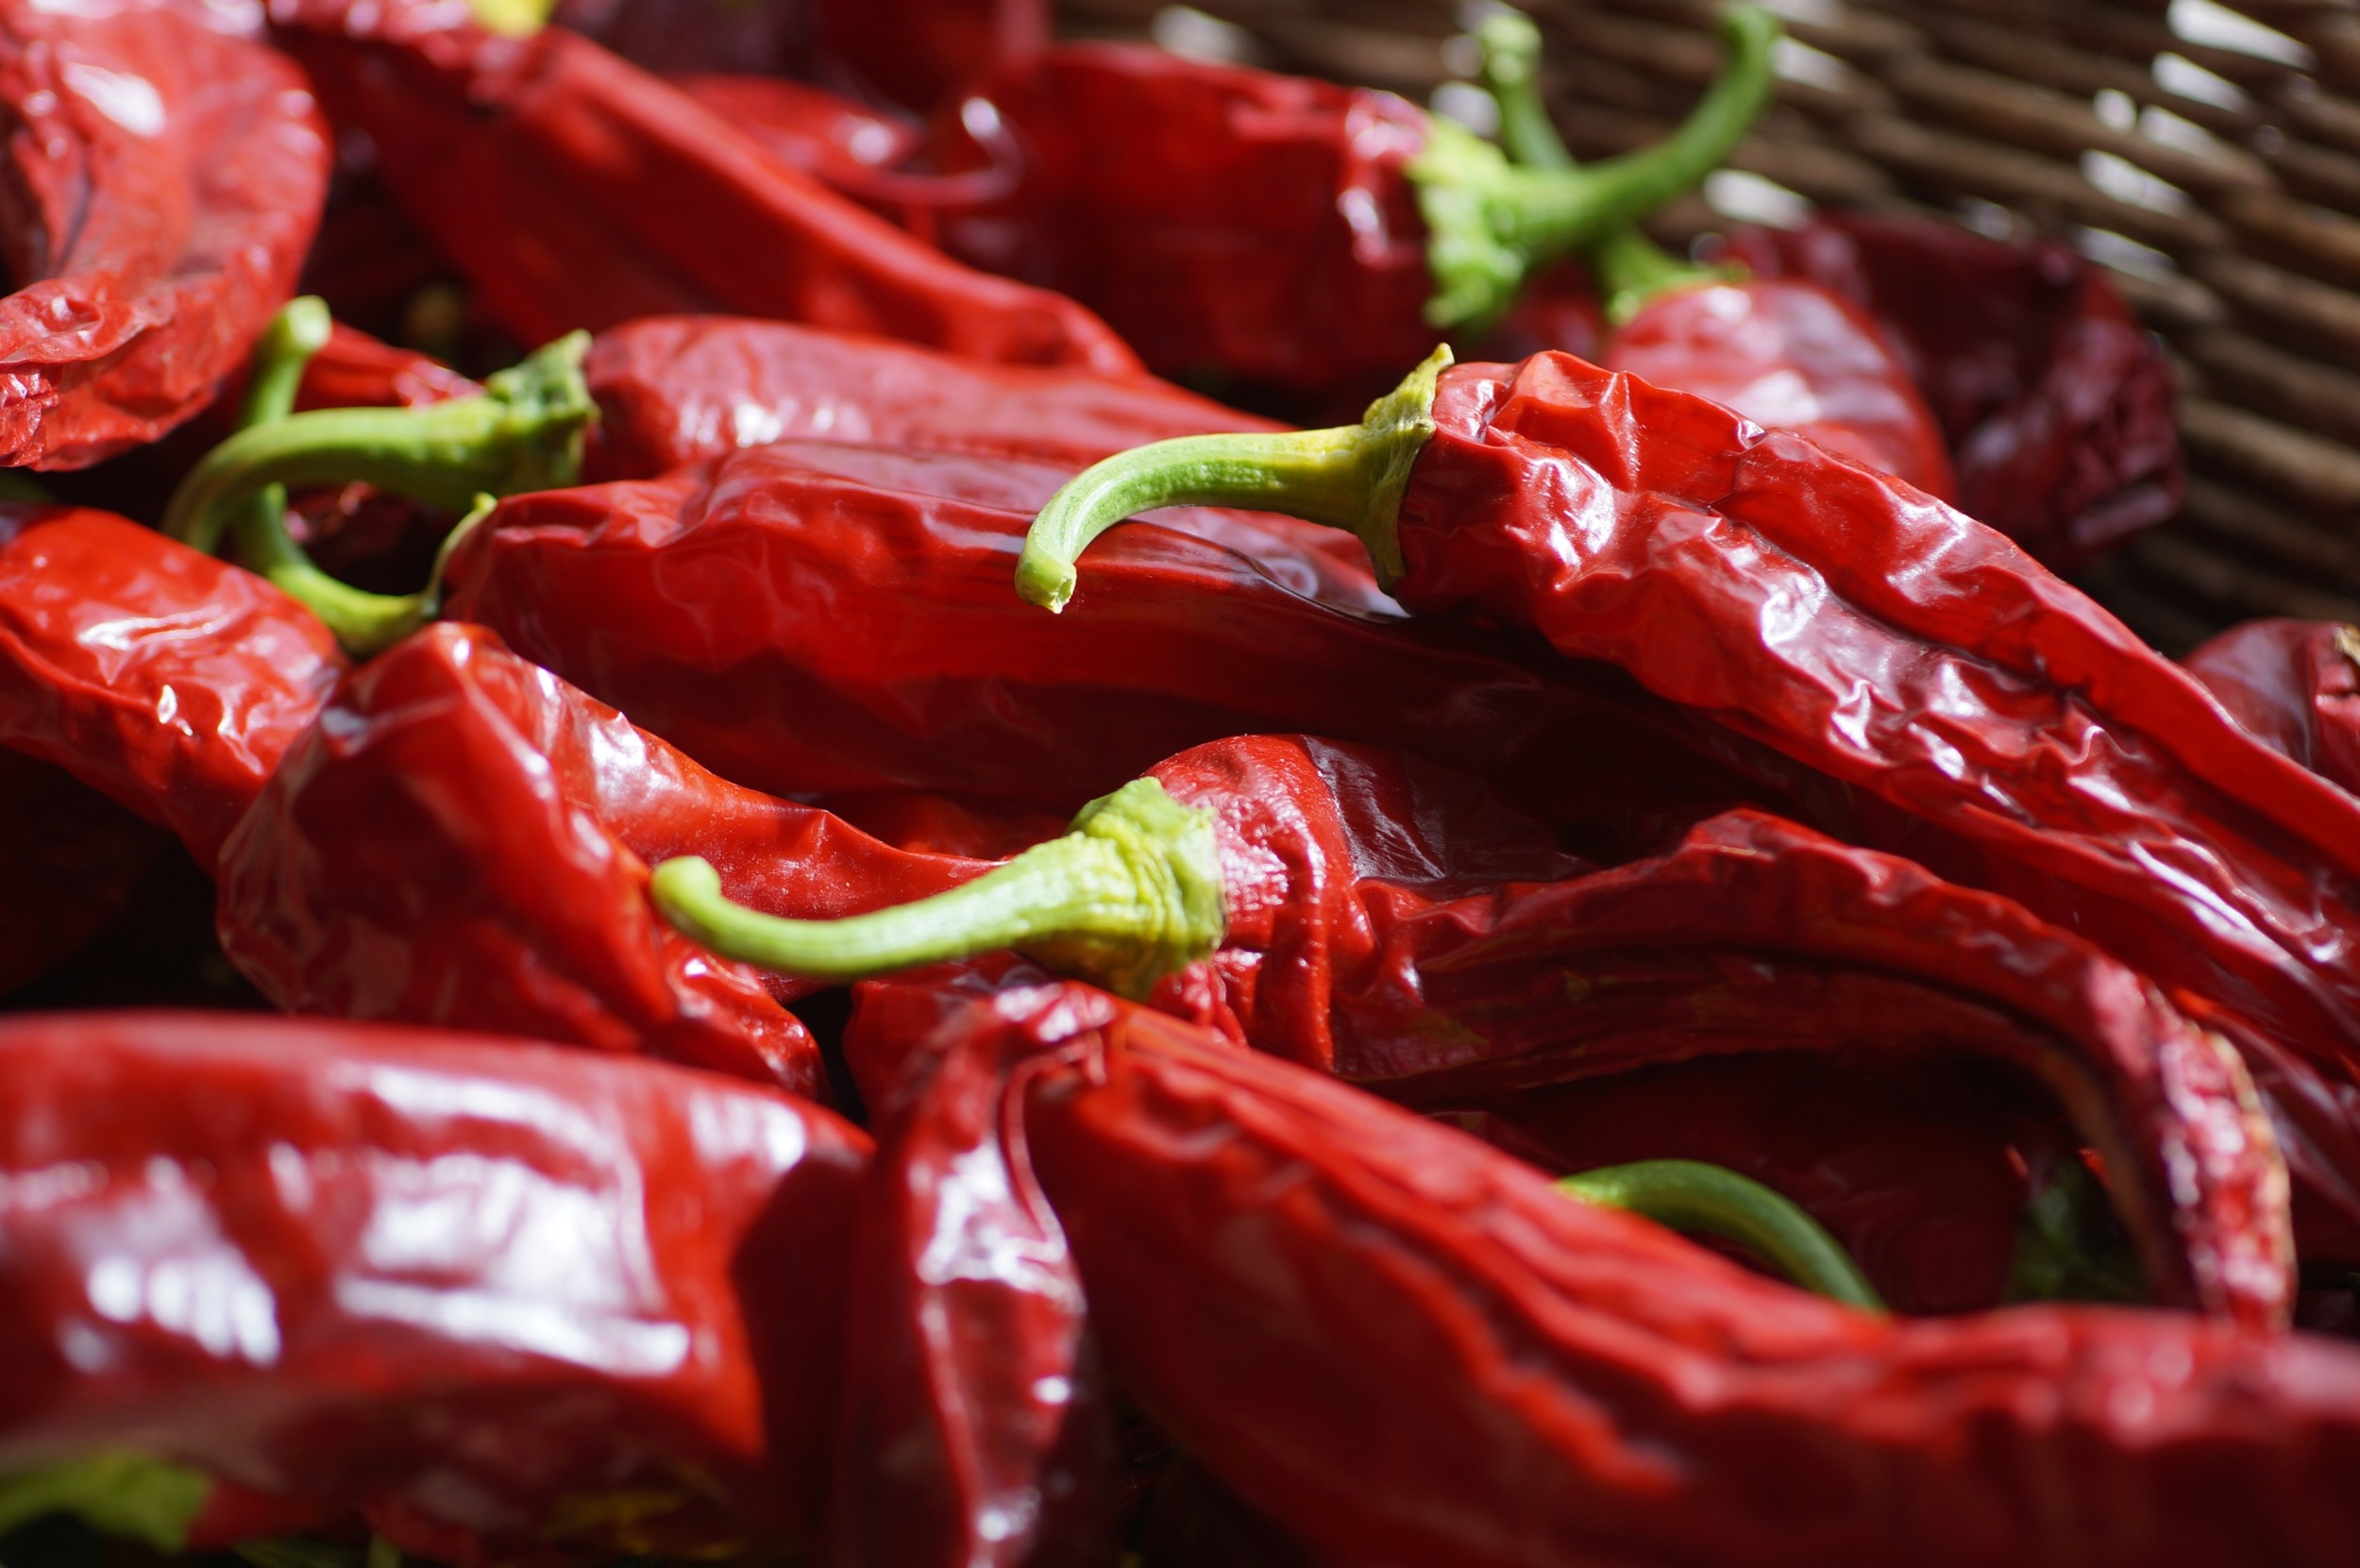 Drying Anaheim chilies. I use most of them to make chili powder that is simply amazing. Video coming someday.